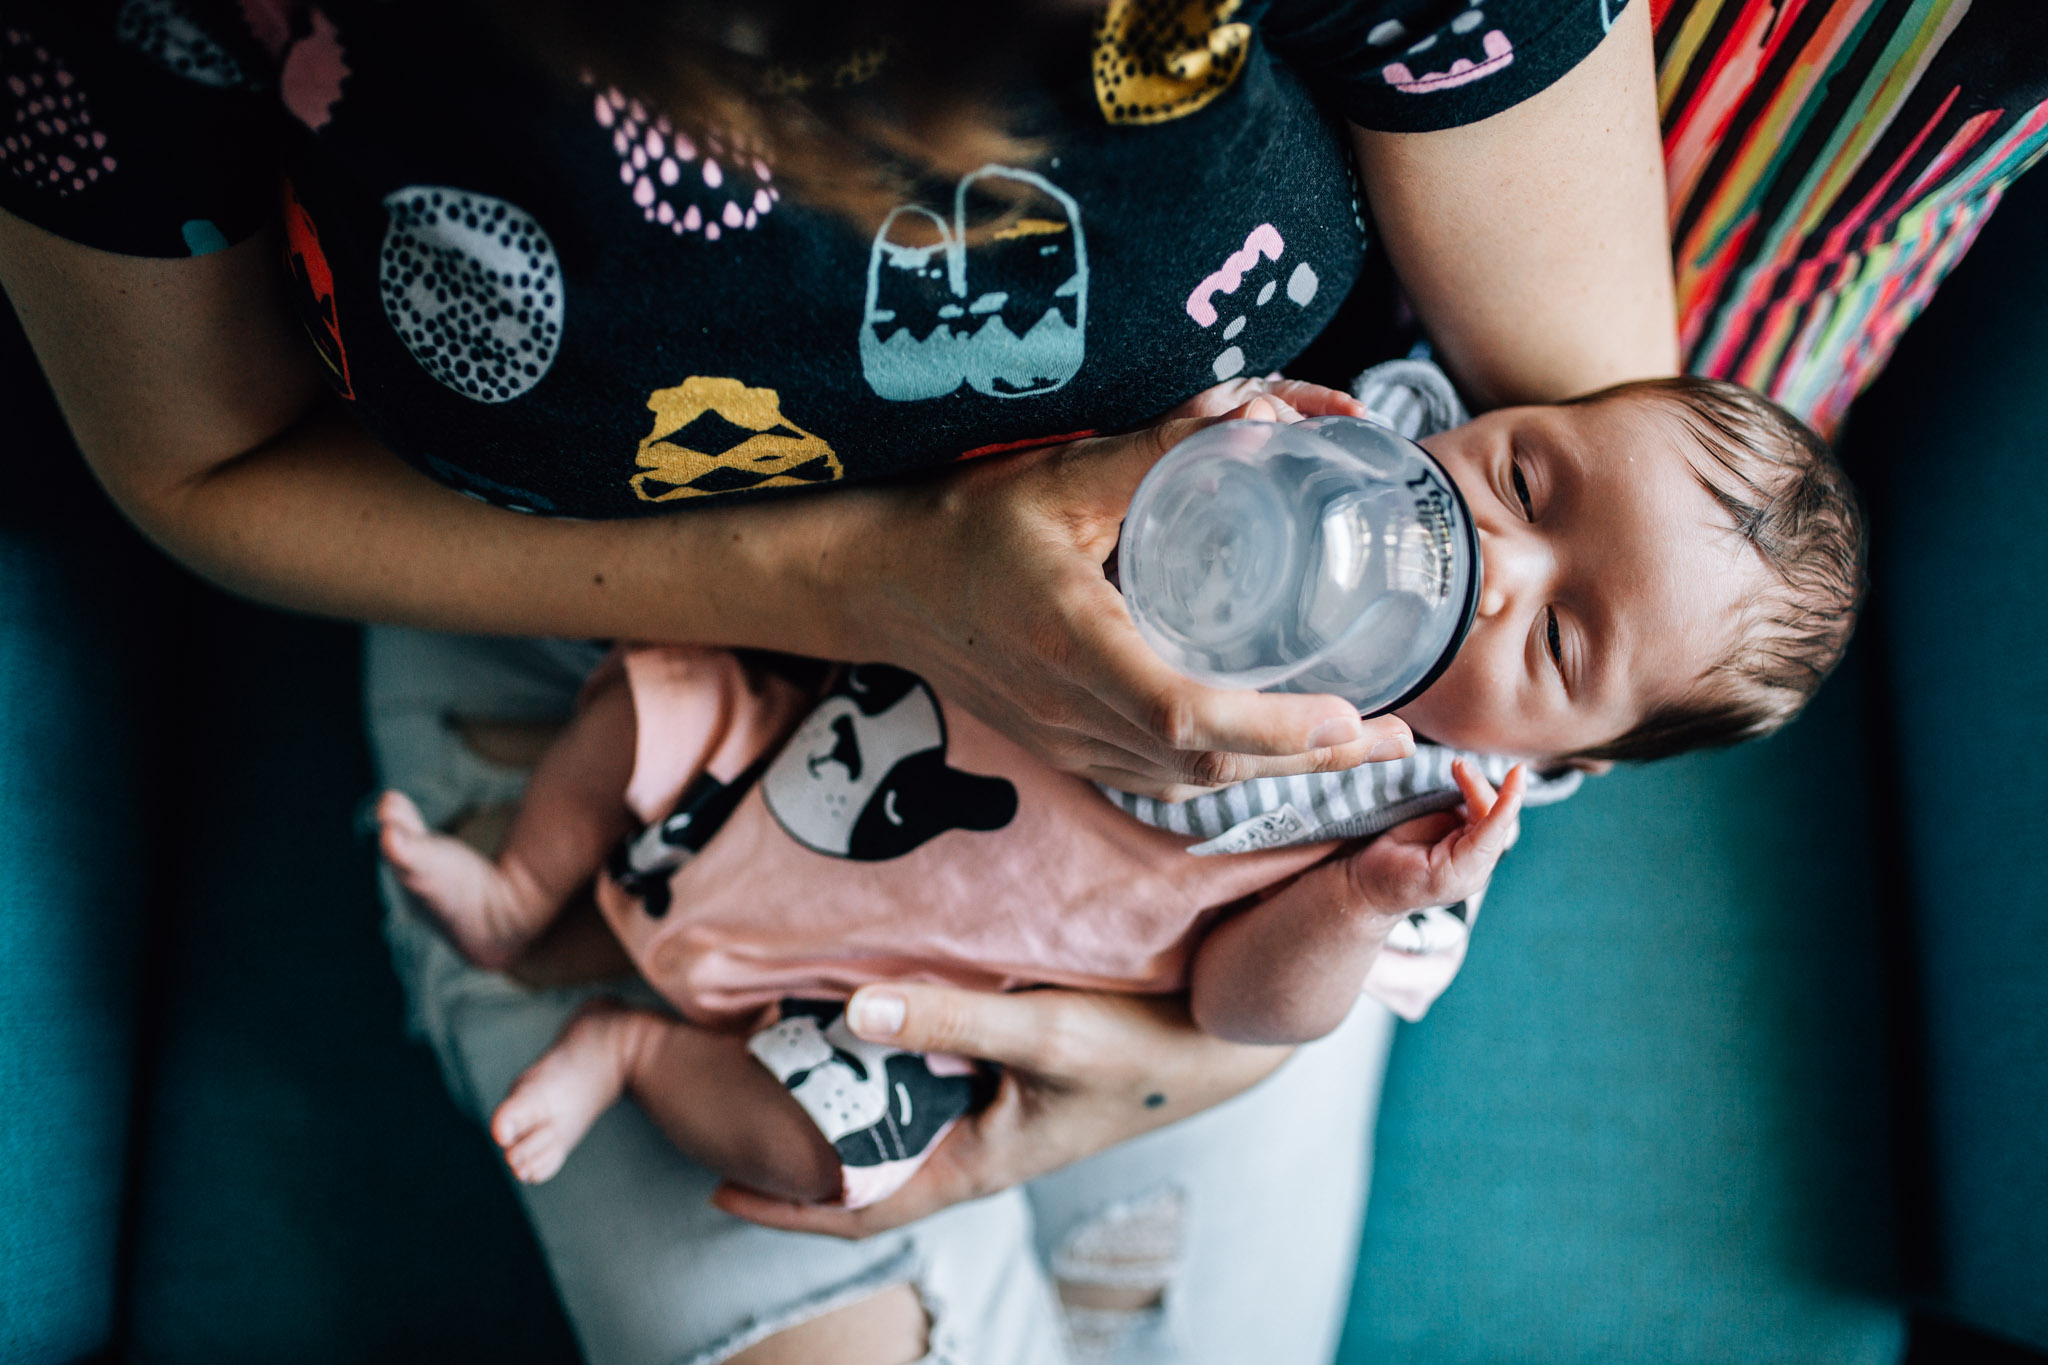 newborn being fed bottle by mother (1 of 1).jpg